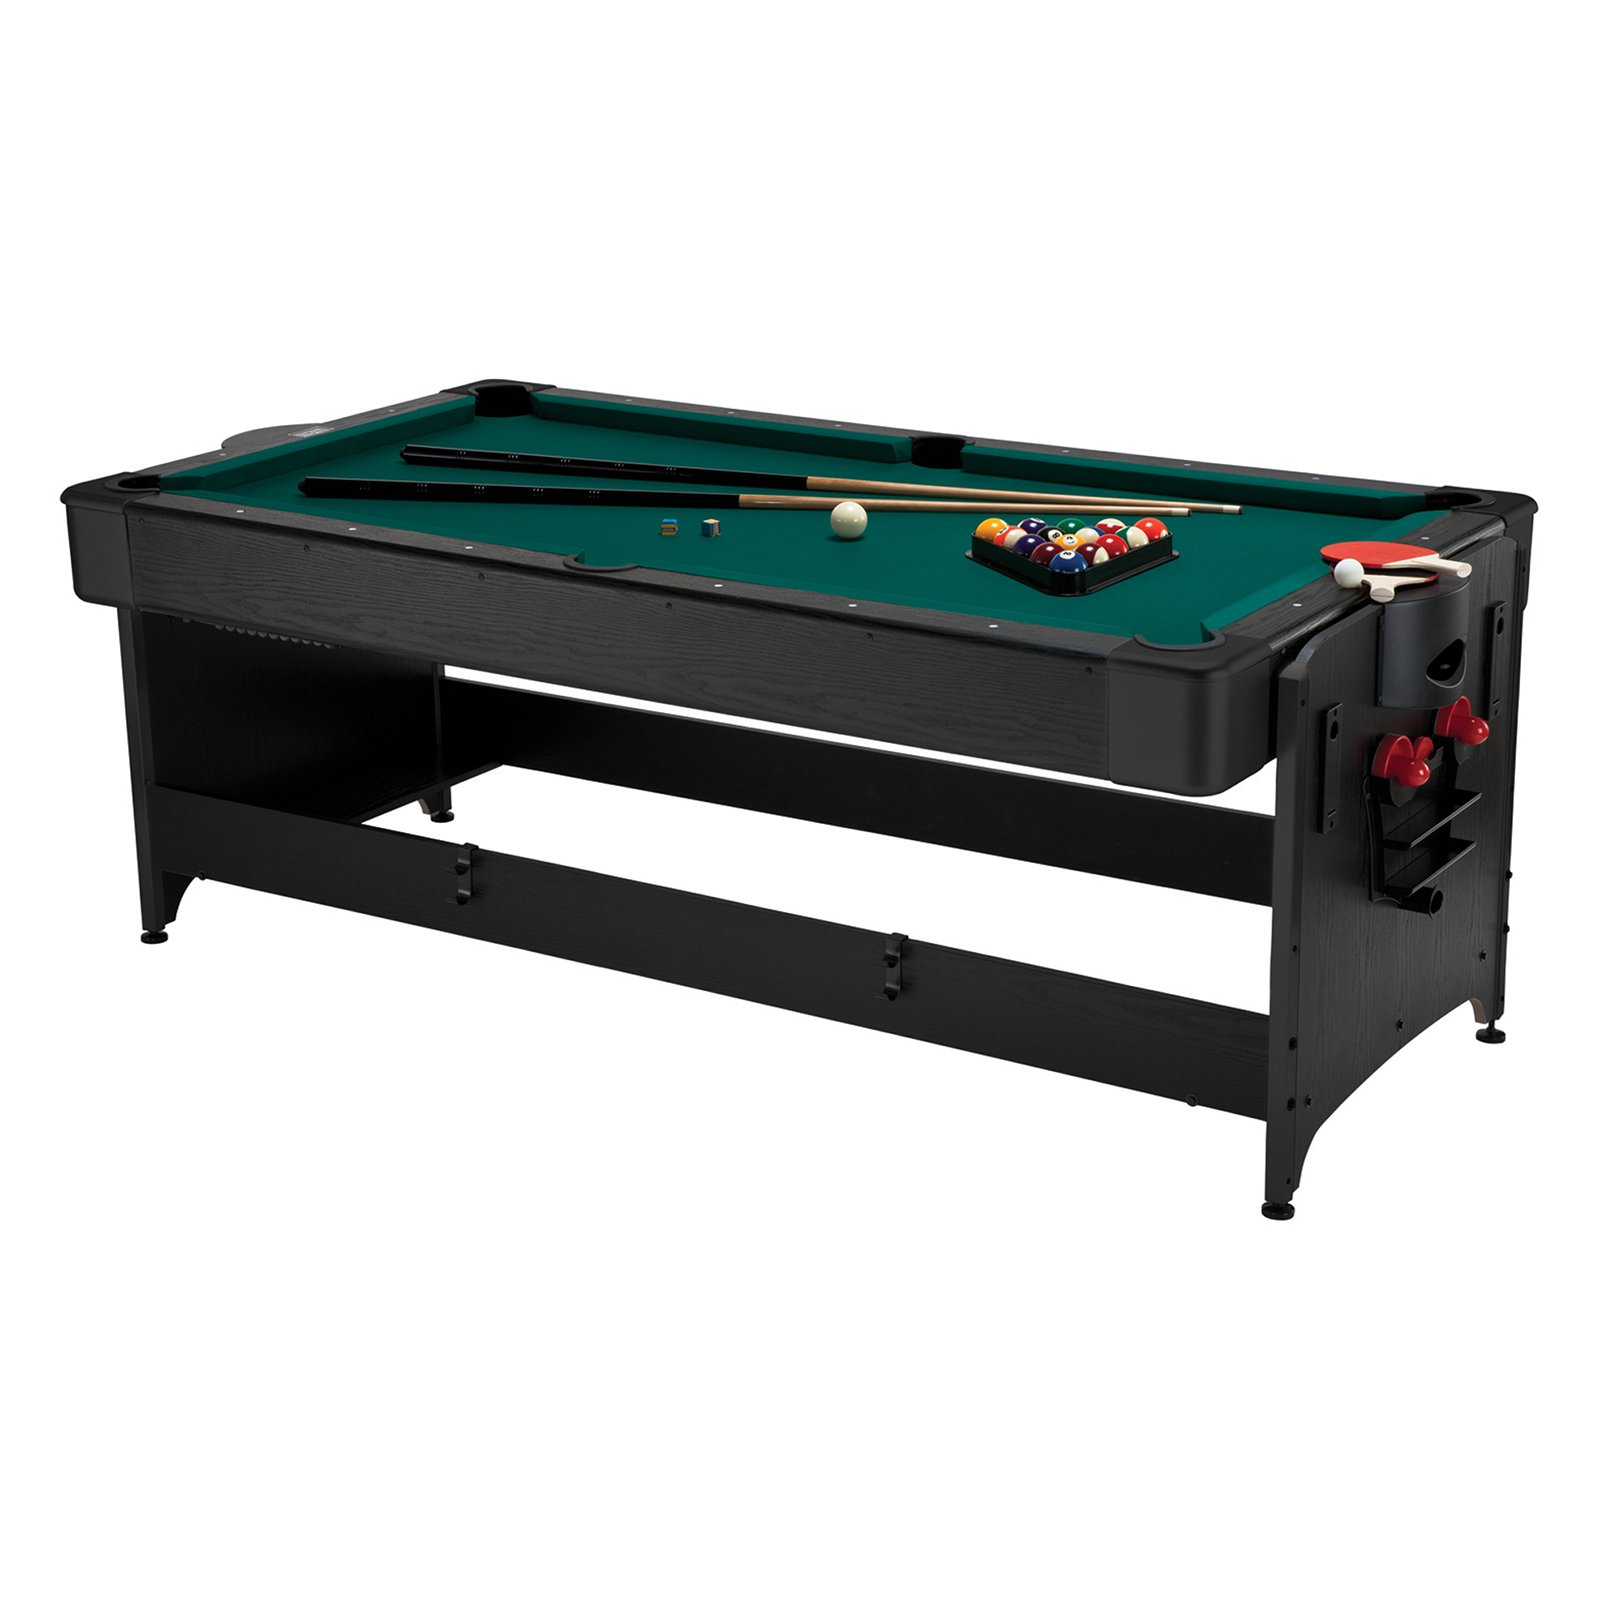 Charmant Fat Cat Pockey 7u0027 2 In 1 Game Table   Walmart.com